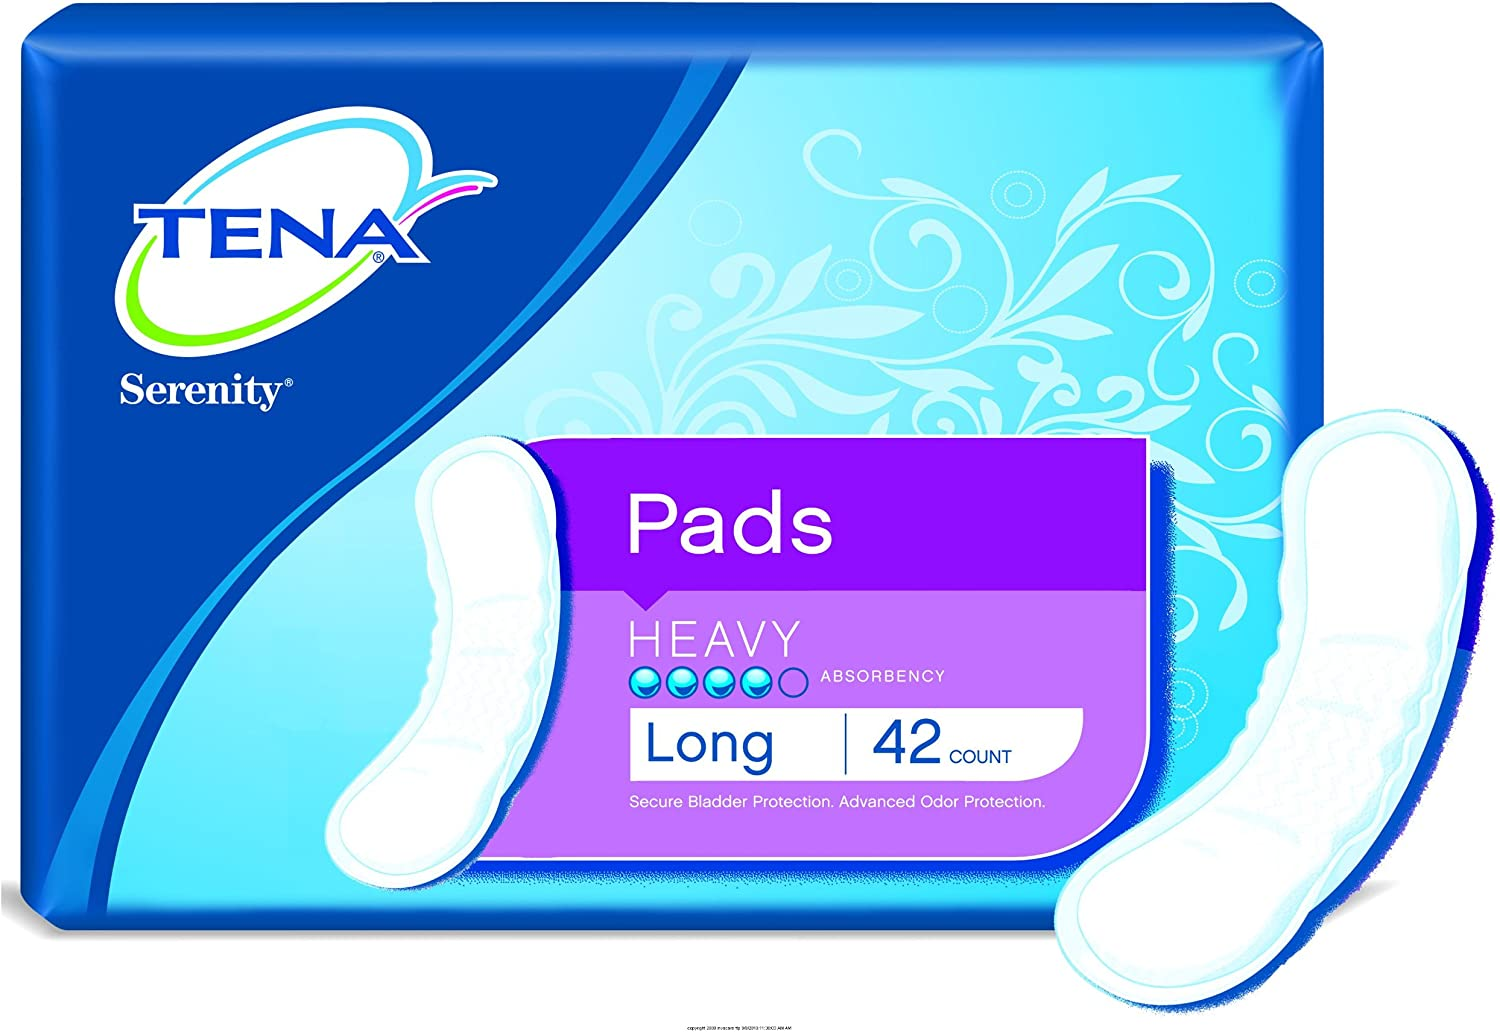 TENA Serenity Bladder Control Pads PADS ULTRA SERENITY Special price for a limited time PL A surprise price is realized